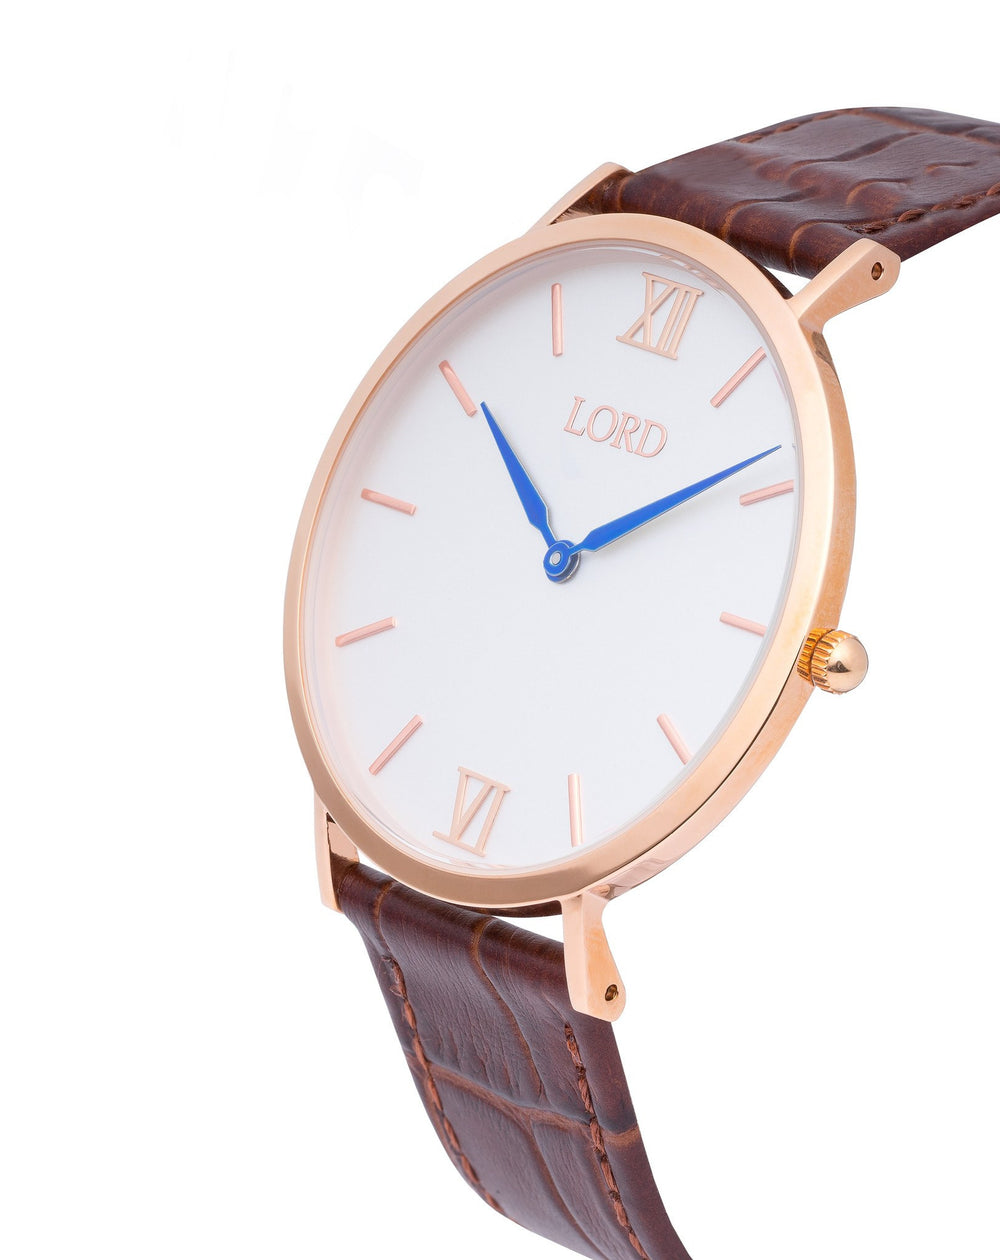 Classic Brown Watch | Men's Watches | Lord Timepieces Side